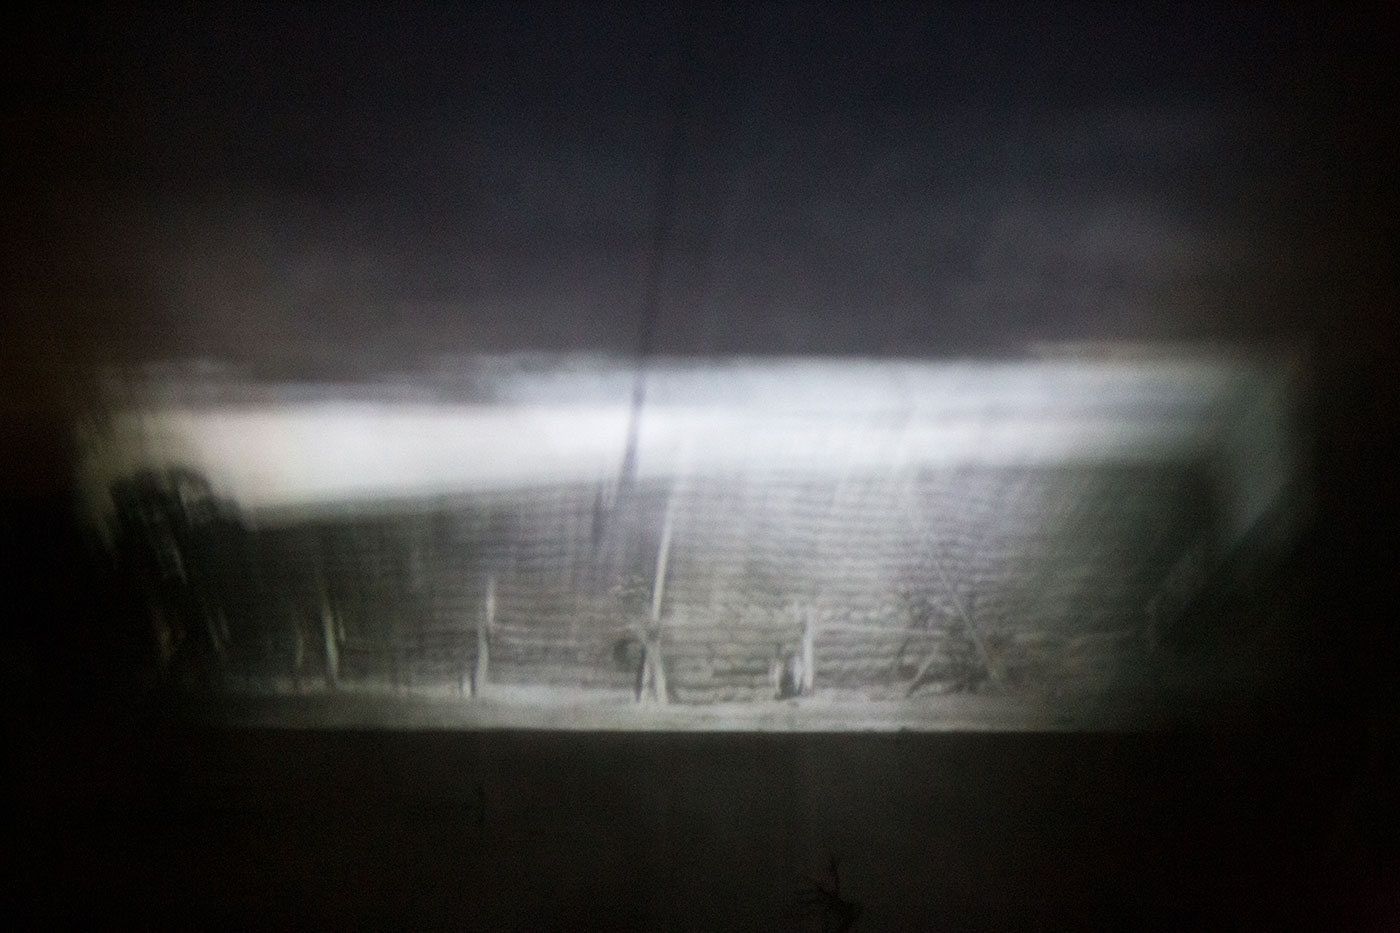 An image of a stack of wheat bags awaiting rail transport at Temora (about 1920) projected onto fog - click to view larger image